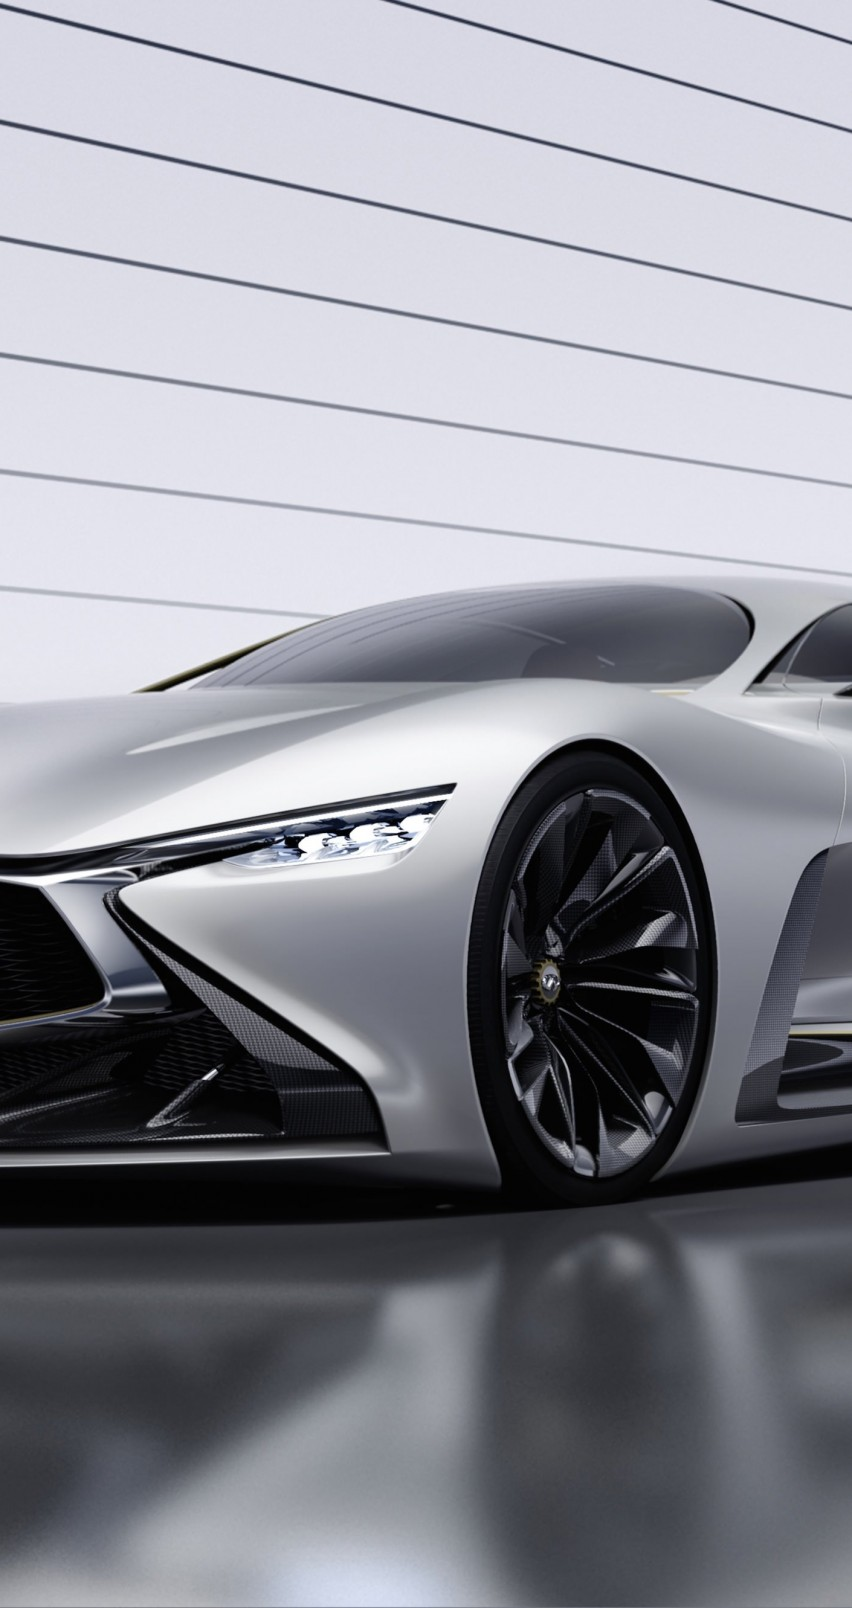 Infiniti Vision GT Concept Wallpaper for Apple iPhone 6 / 6s